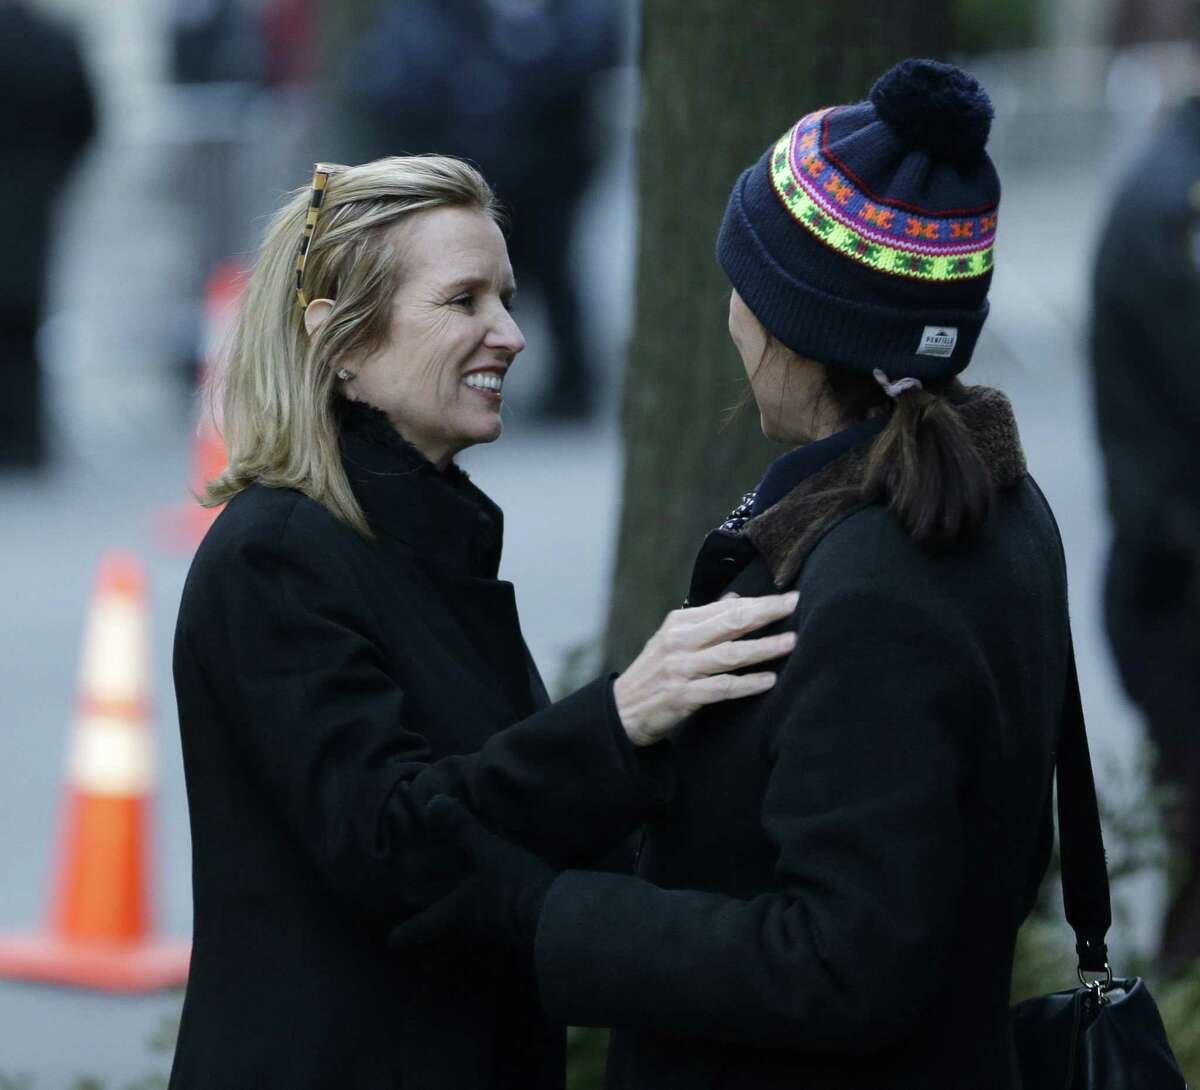 Kerry Kennedy, former wife of New York Governor Andrew Cuomo, greets an unidentified woman outside the wake for Mario Cuomo in New York, Monday, Jan. 5, 2015. Mario Cuomo, 82, died in his Manhattan home on Thursday, Jan. 1, just hours after his son was inaugurated for a second term. (AP Photo/Seth Wenig)